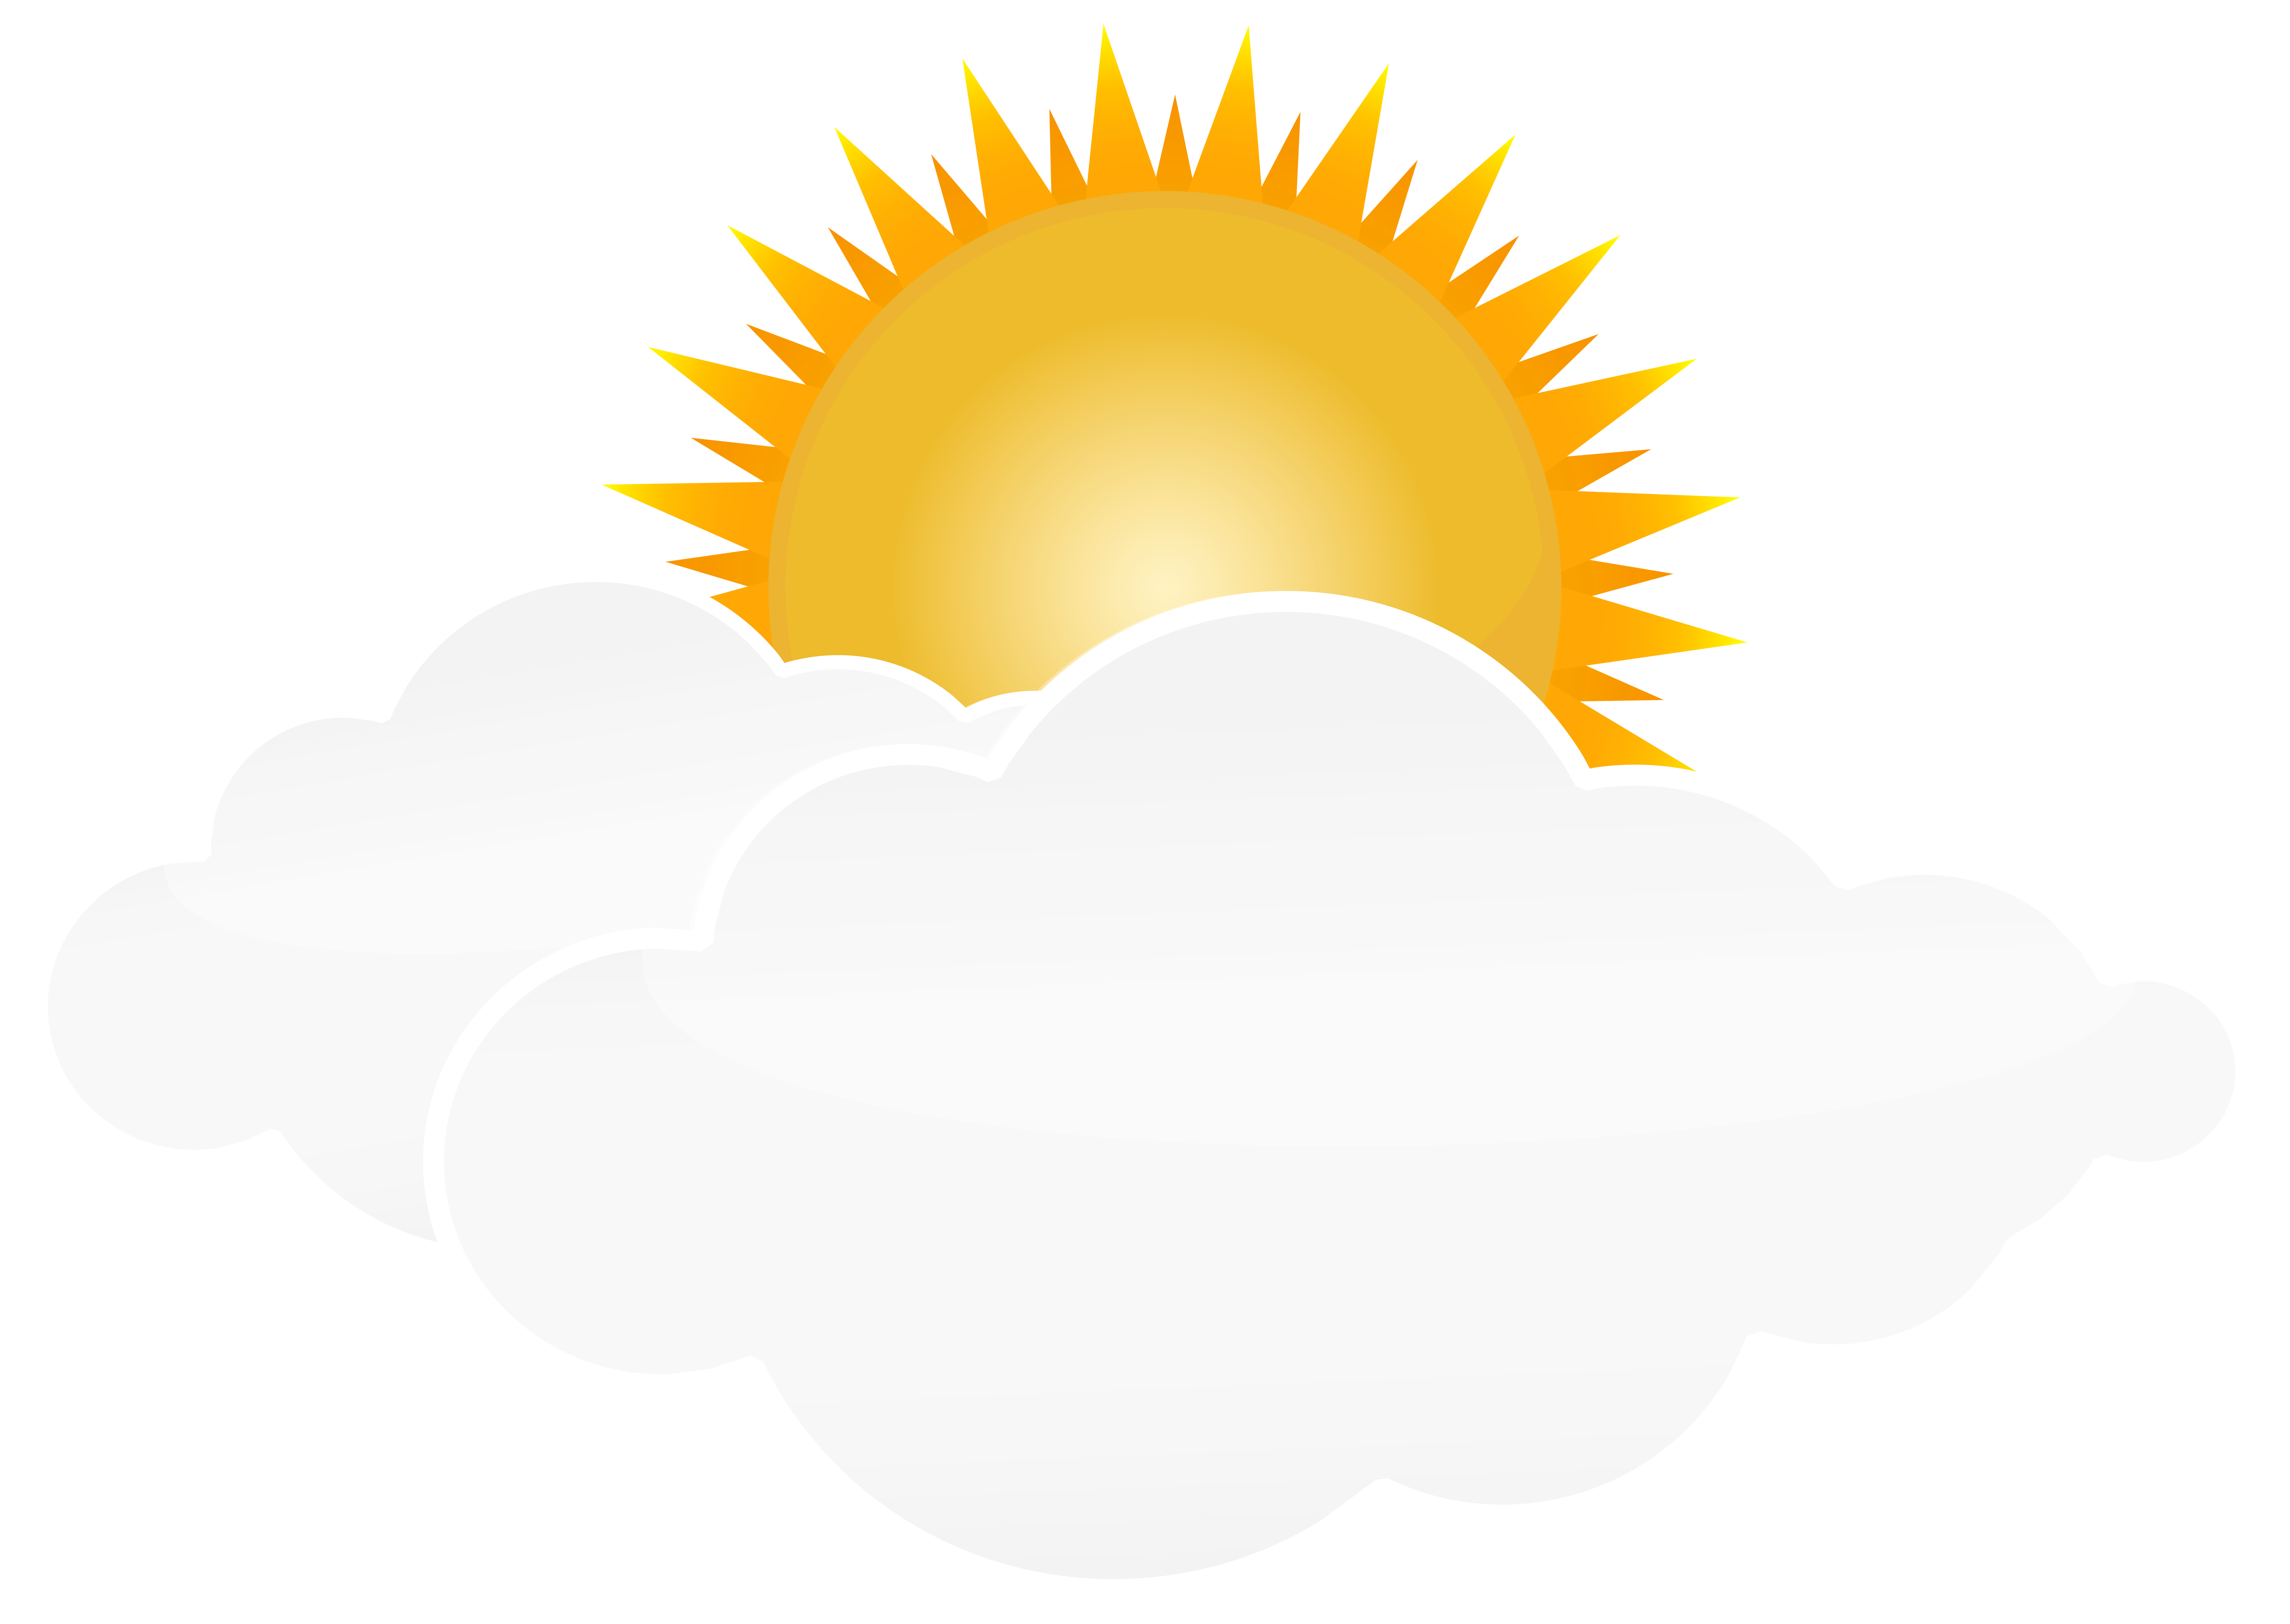 Cloud png clipart. Sun with clouds transparent